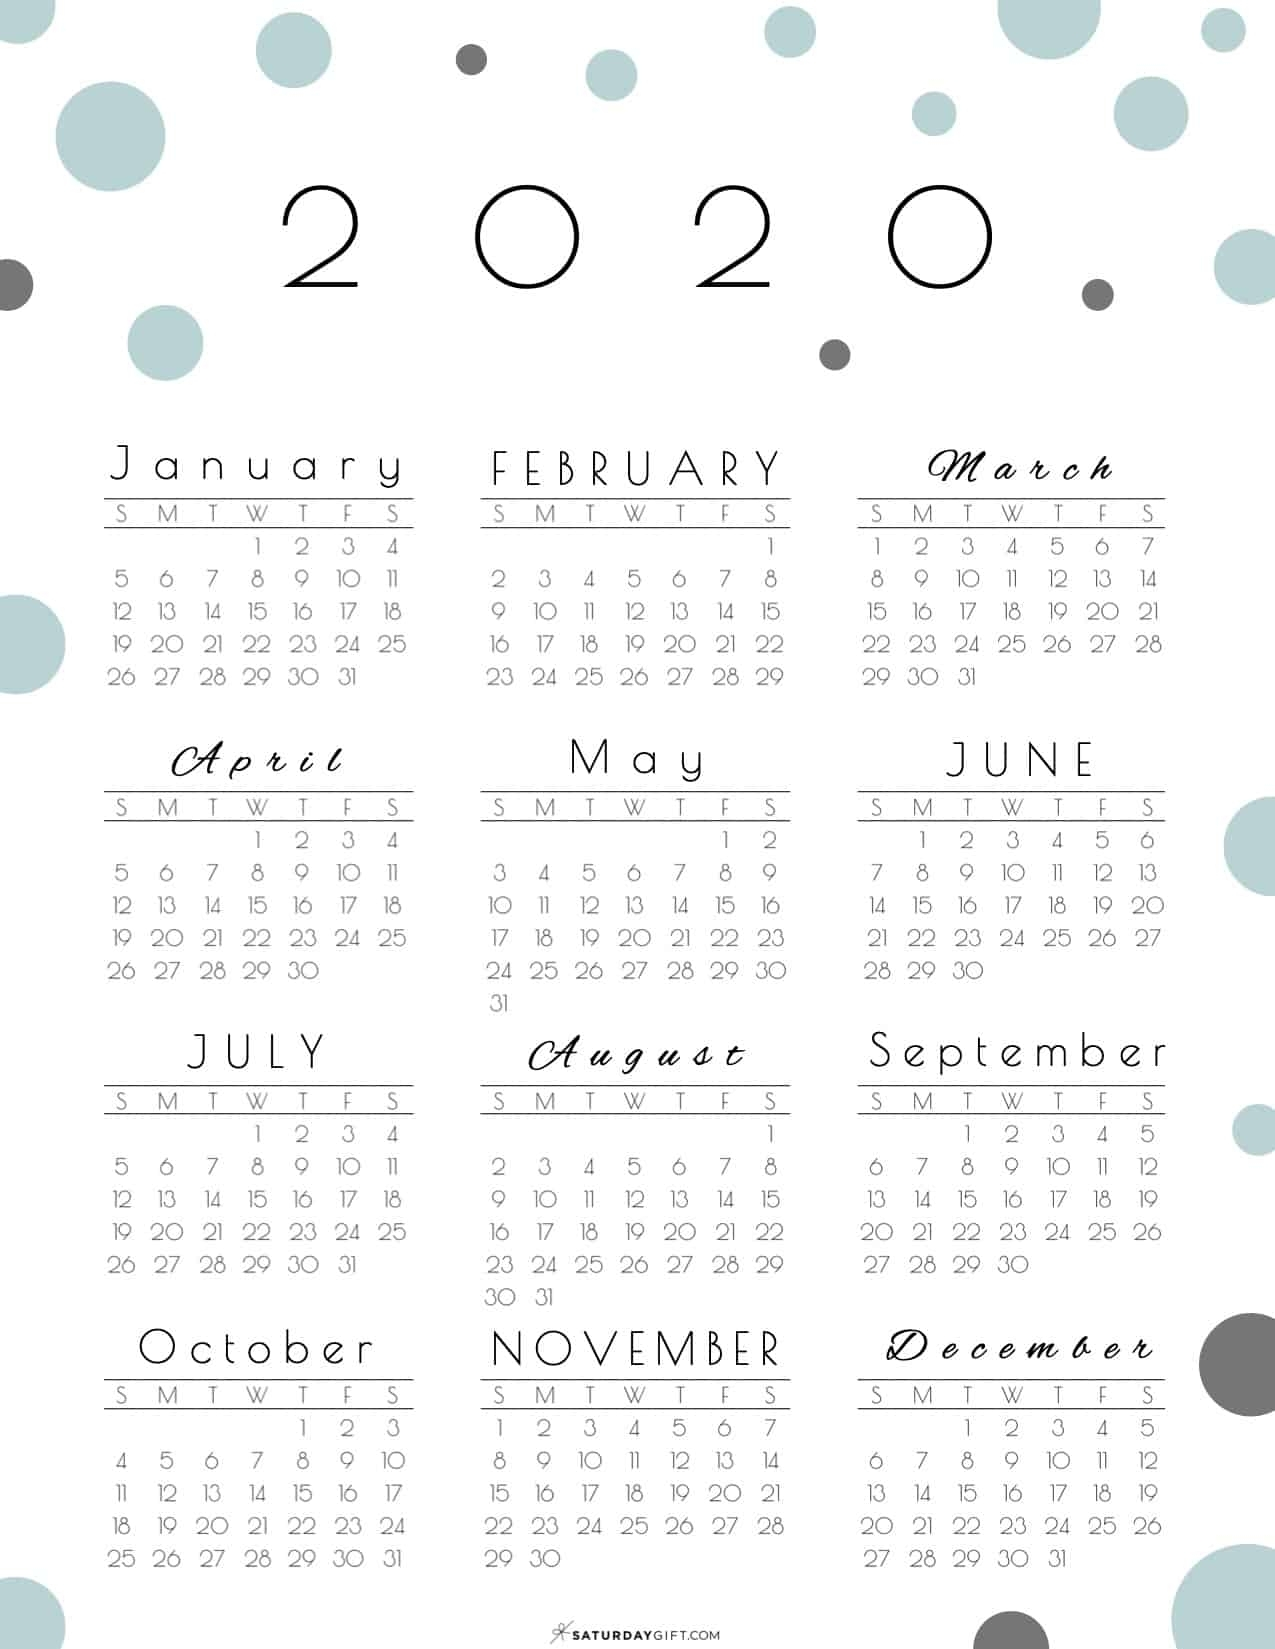 Year At A Glance Calendar 2020 - Pretty (And Free!) Printable in At A Glance 2020 Calendar Year Free Printable